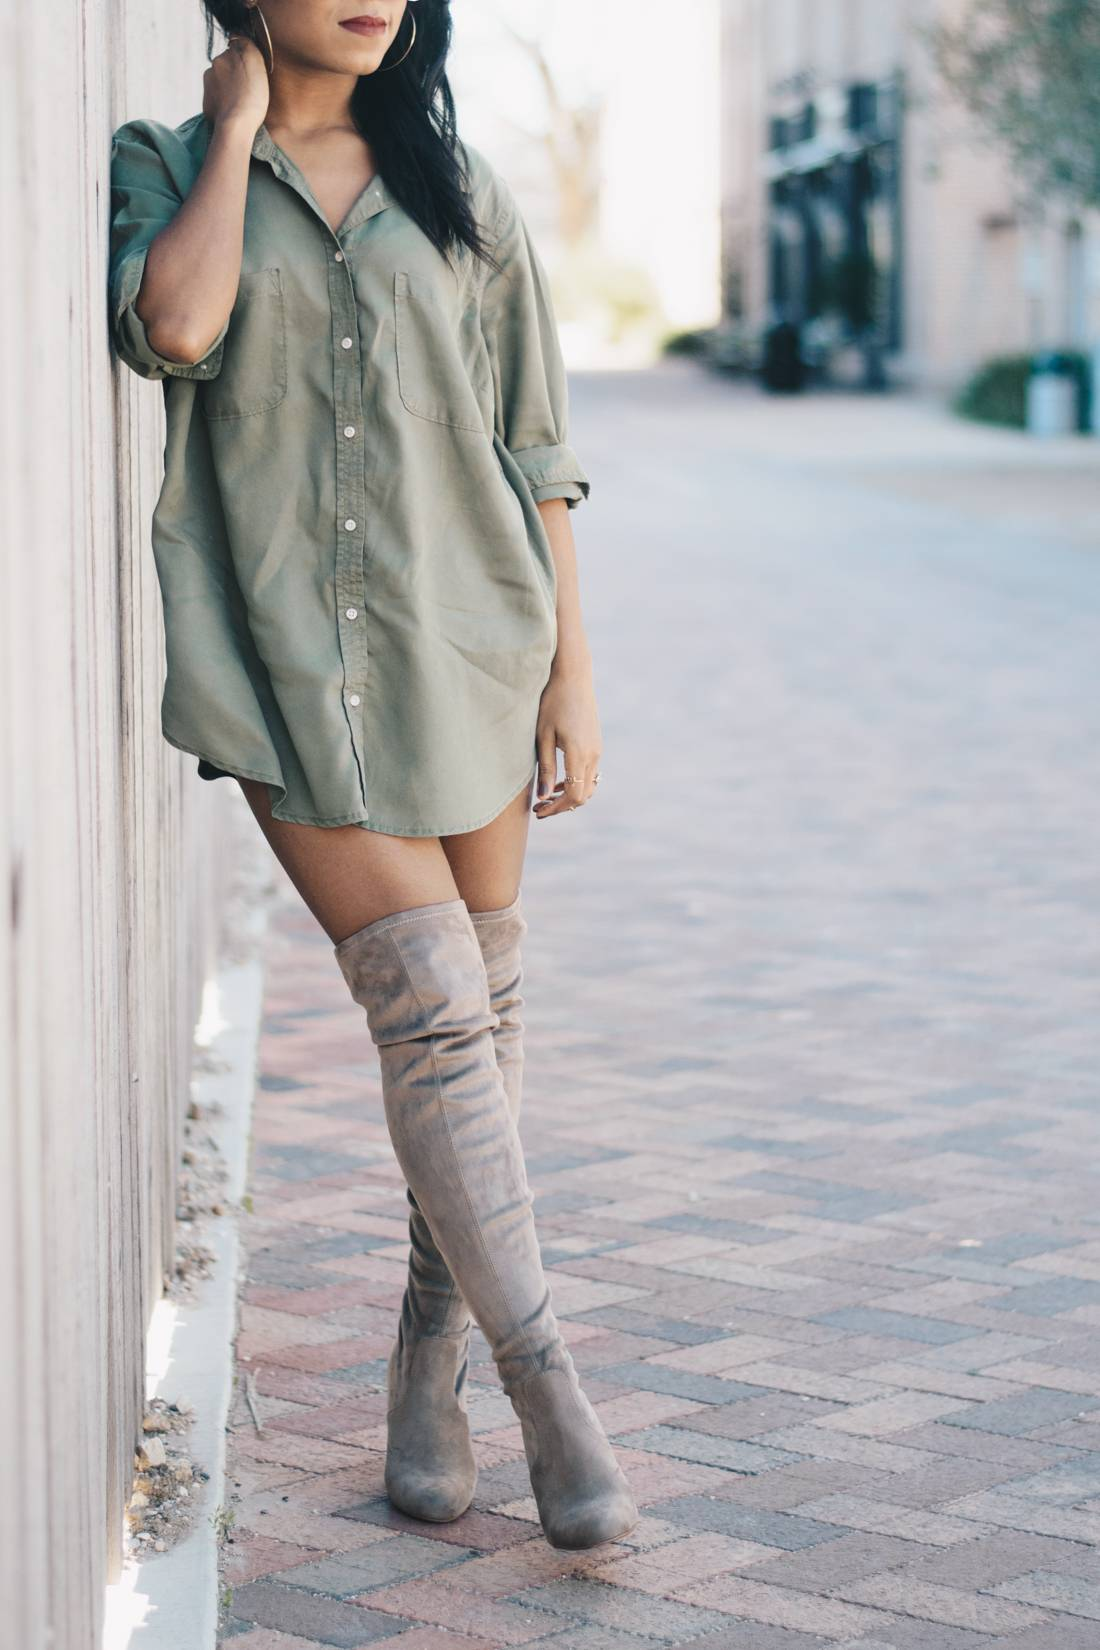 Nude Thigh High Boots And Oversized Shirt 2 2 Venti Fashion